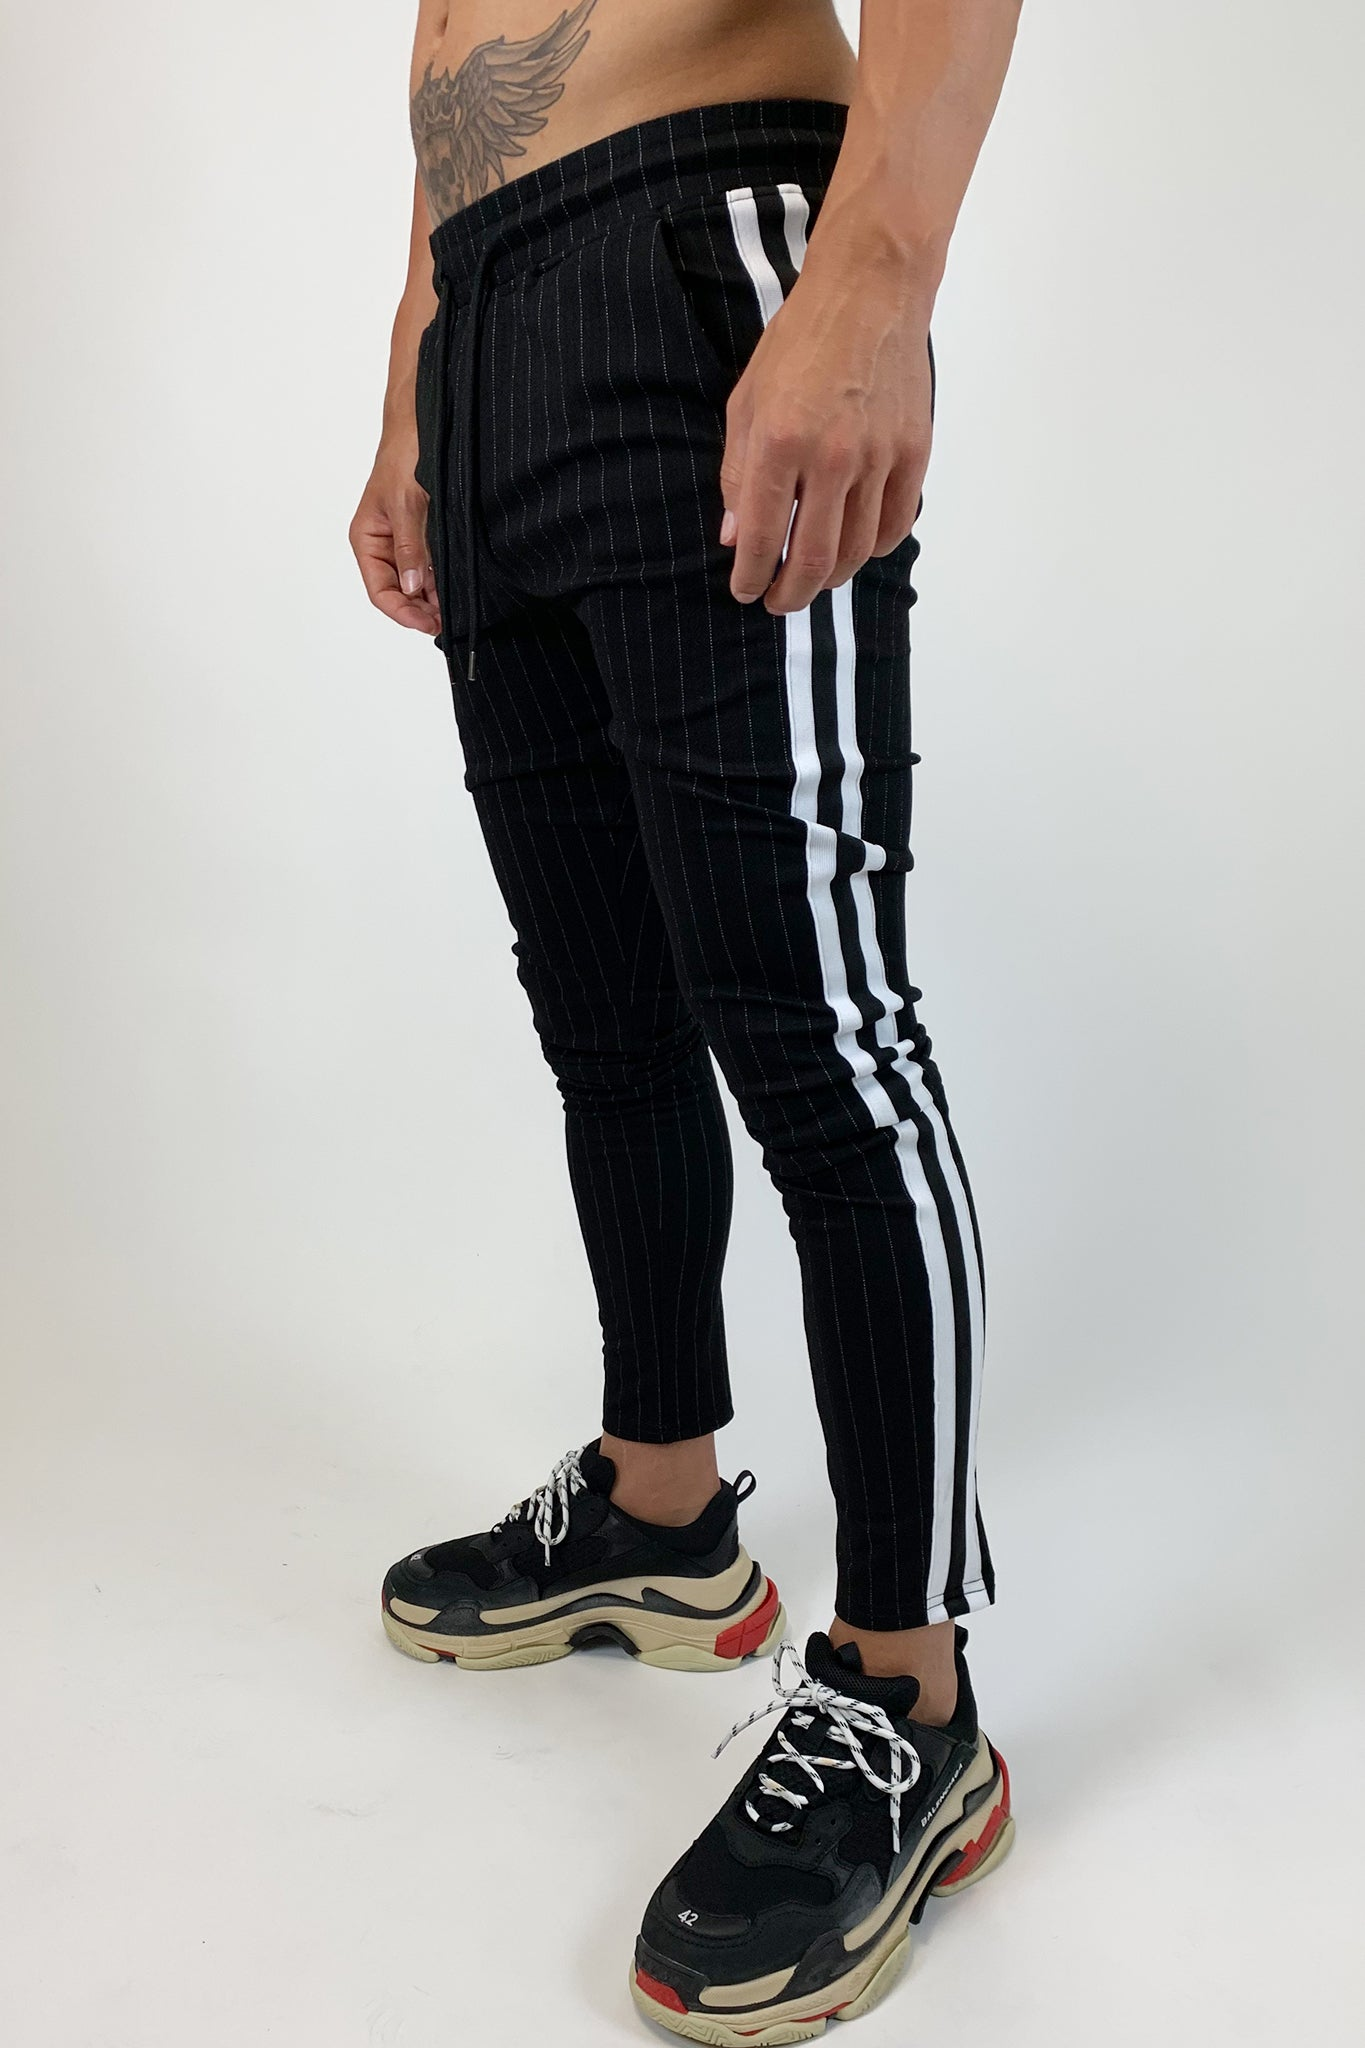 Black Pinstripe Trousers - Illusion Attire